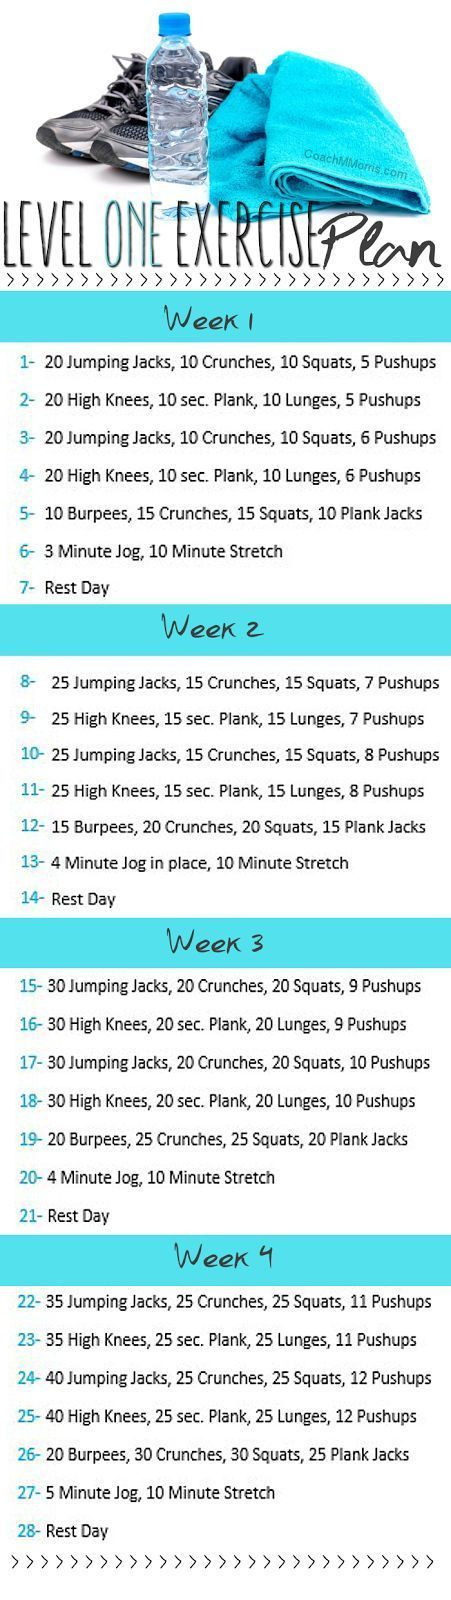 Level one exercise plan, snag a PDF download of this routine on my blog.